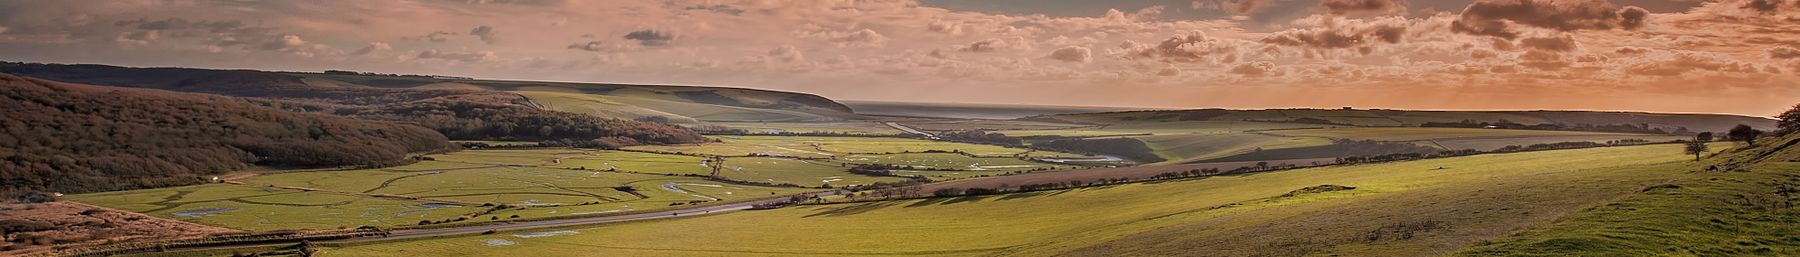 Cuckmere Haven and its famous meanders